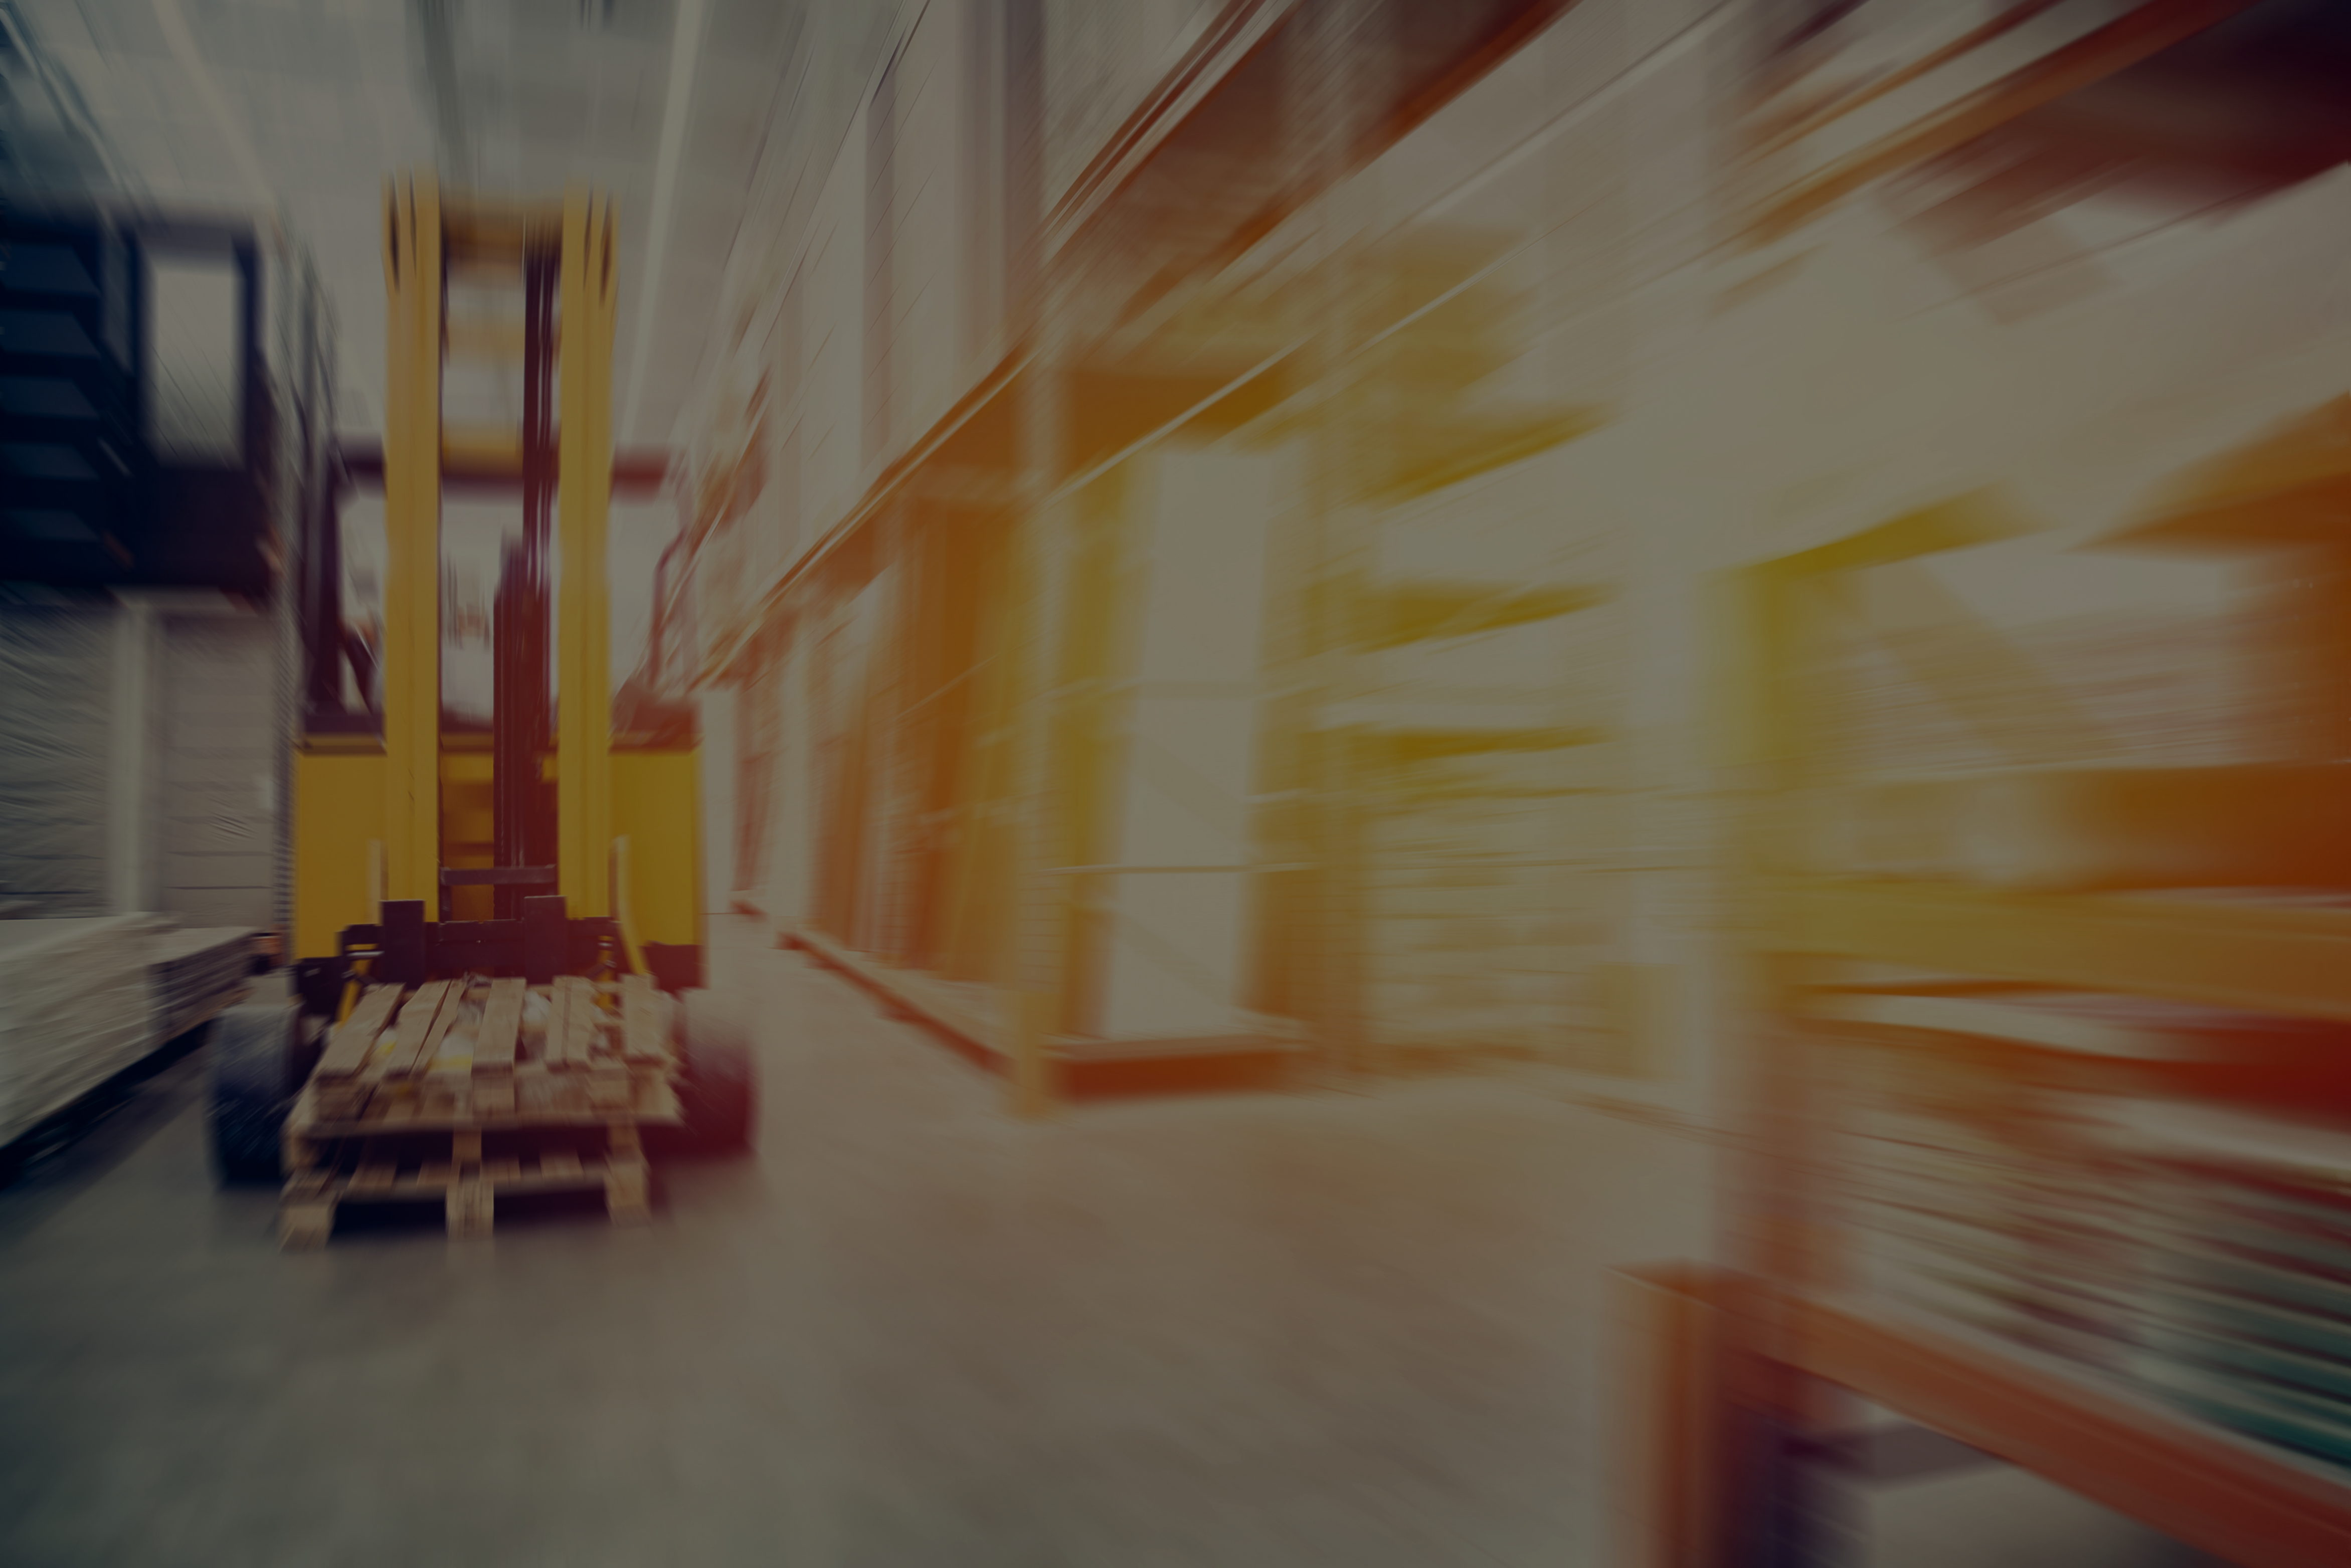 Howdens Fined £1.2m For Forklift Fatality